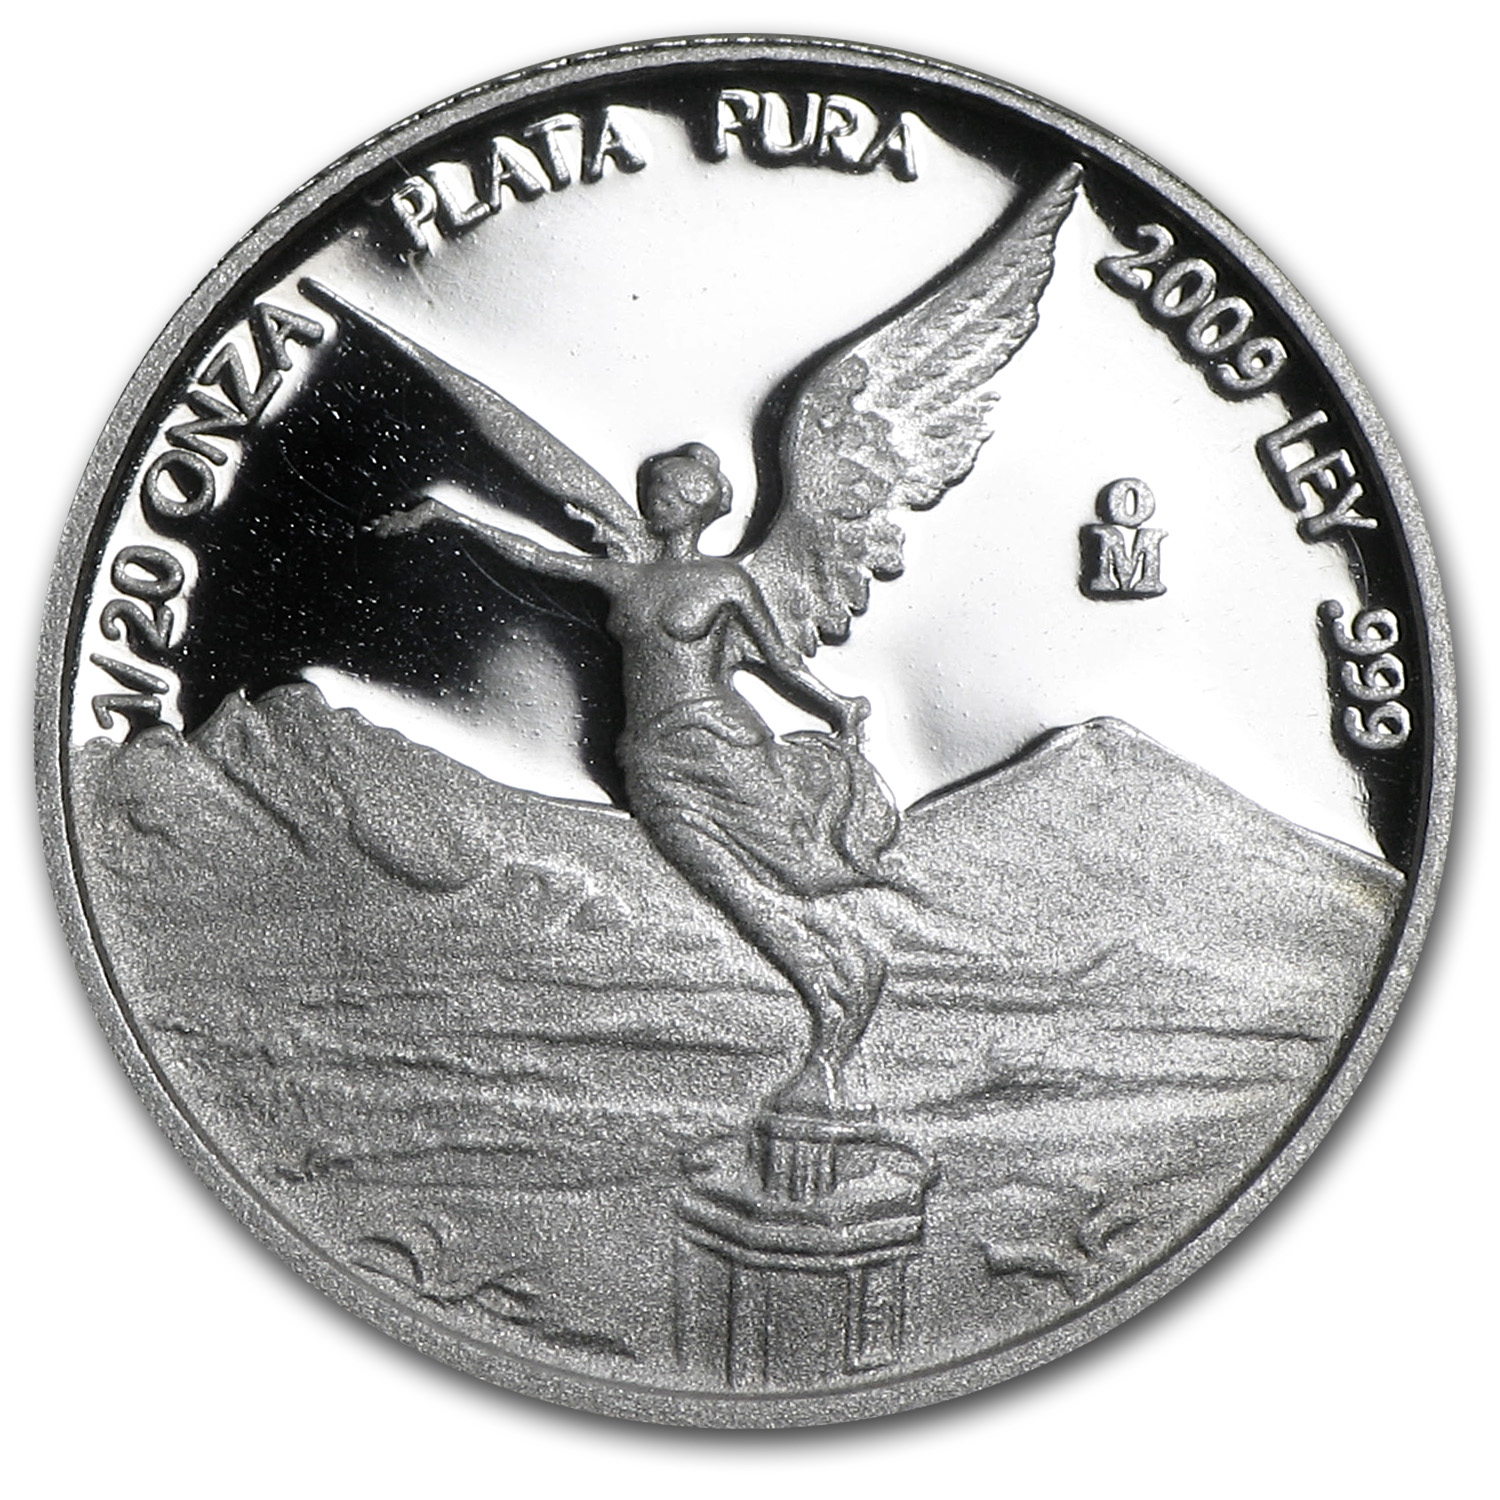 2009 Mexico 1/20 oz Silver Libertad Proof (In Capsule)